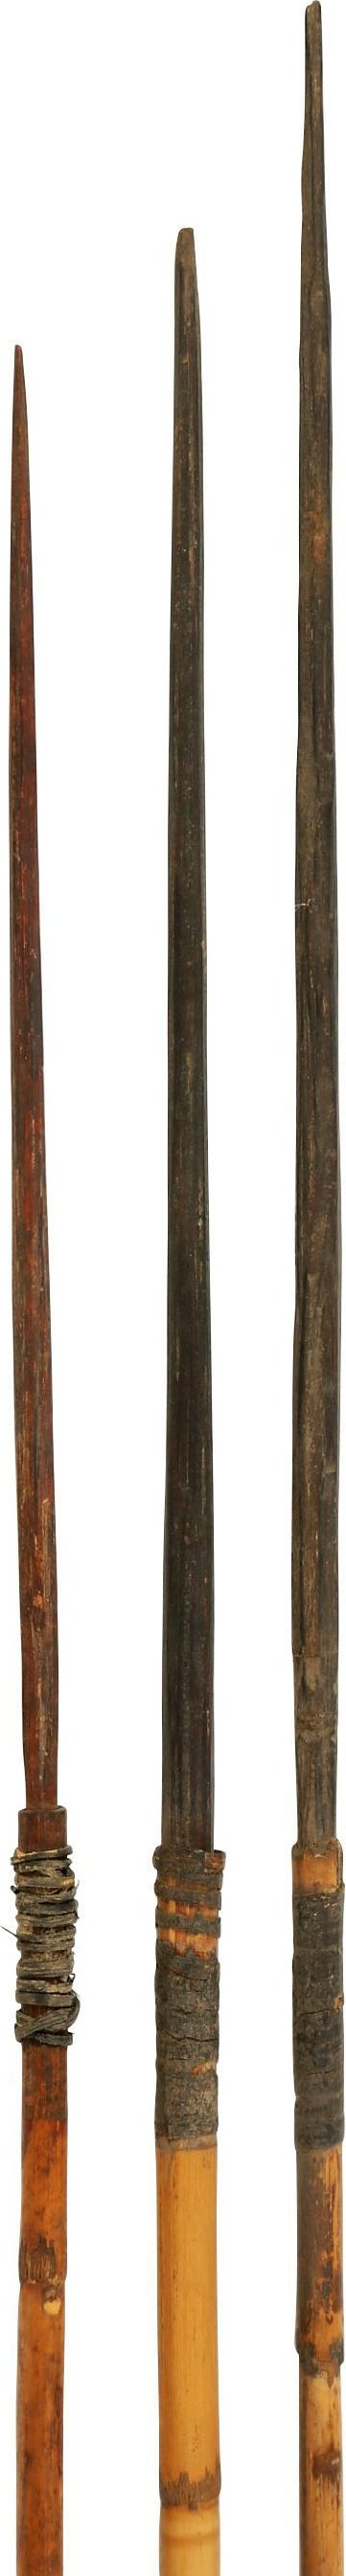 Solomon Island Arrows - Product